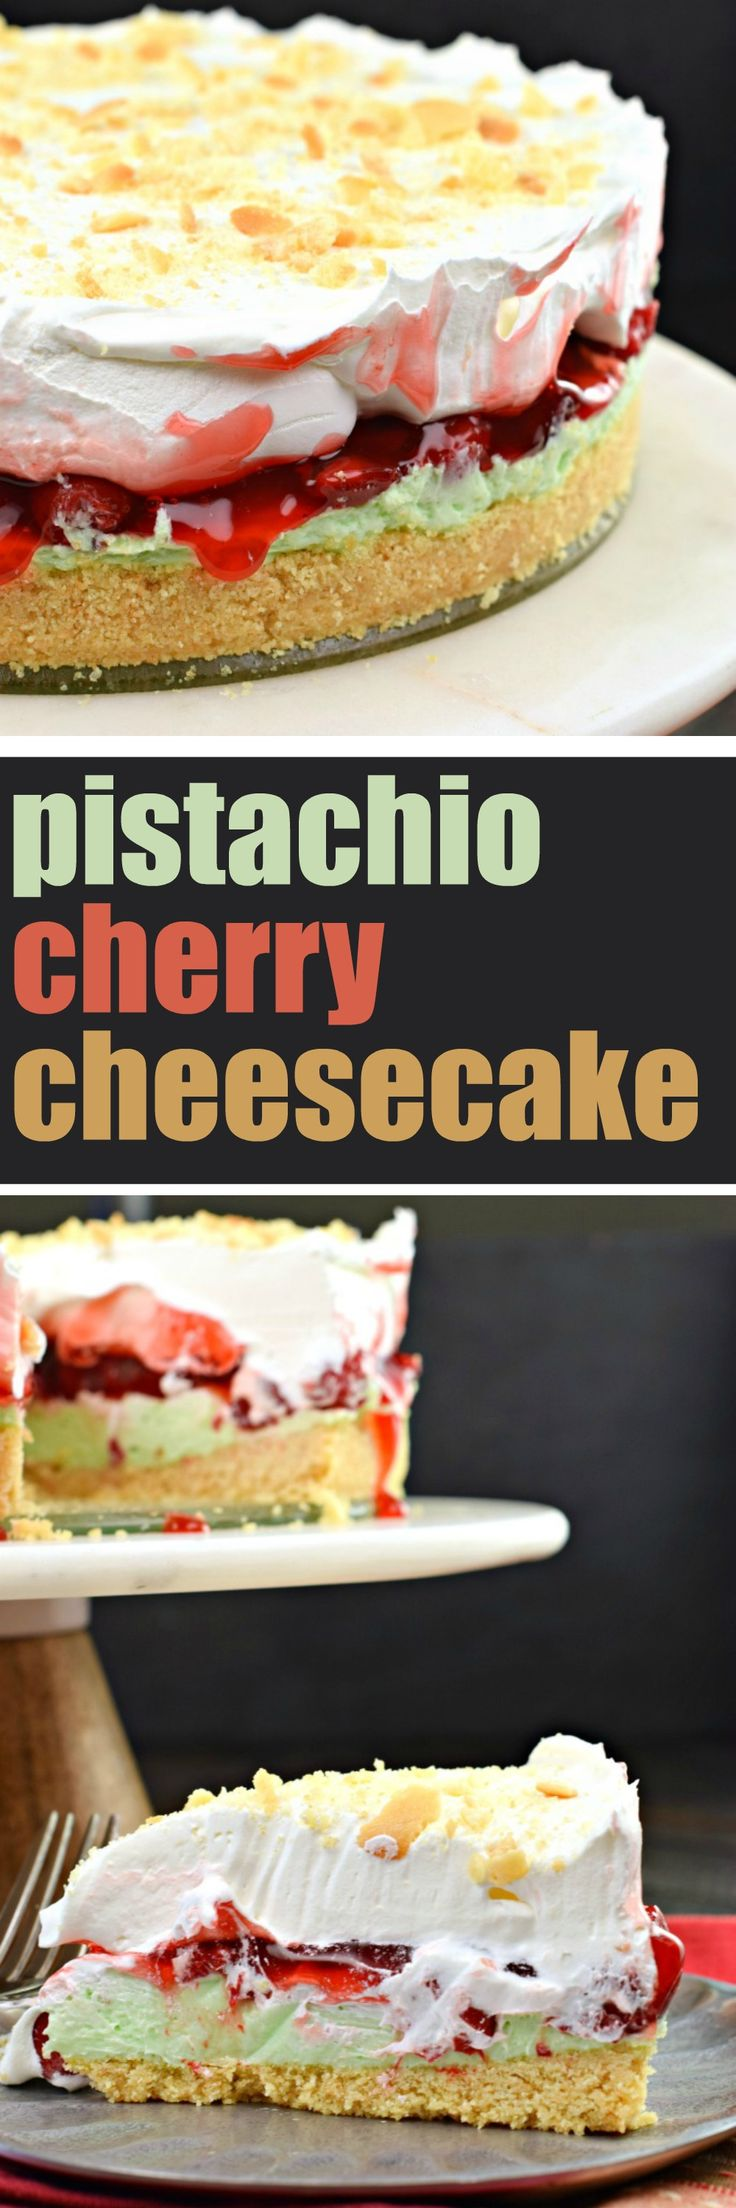 No Bake Pistachio Cherry Cheesecake recipe #holidays #christmas #cheesecake #christmasbaking #christmasrecipes #pistachio